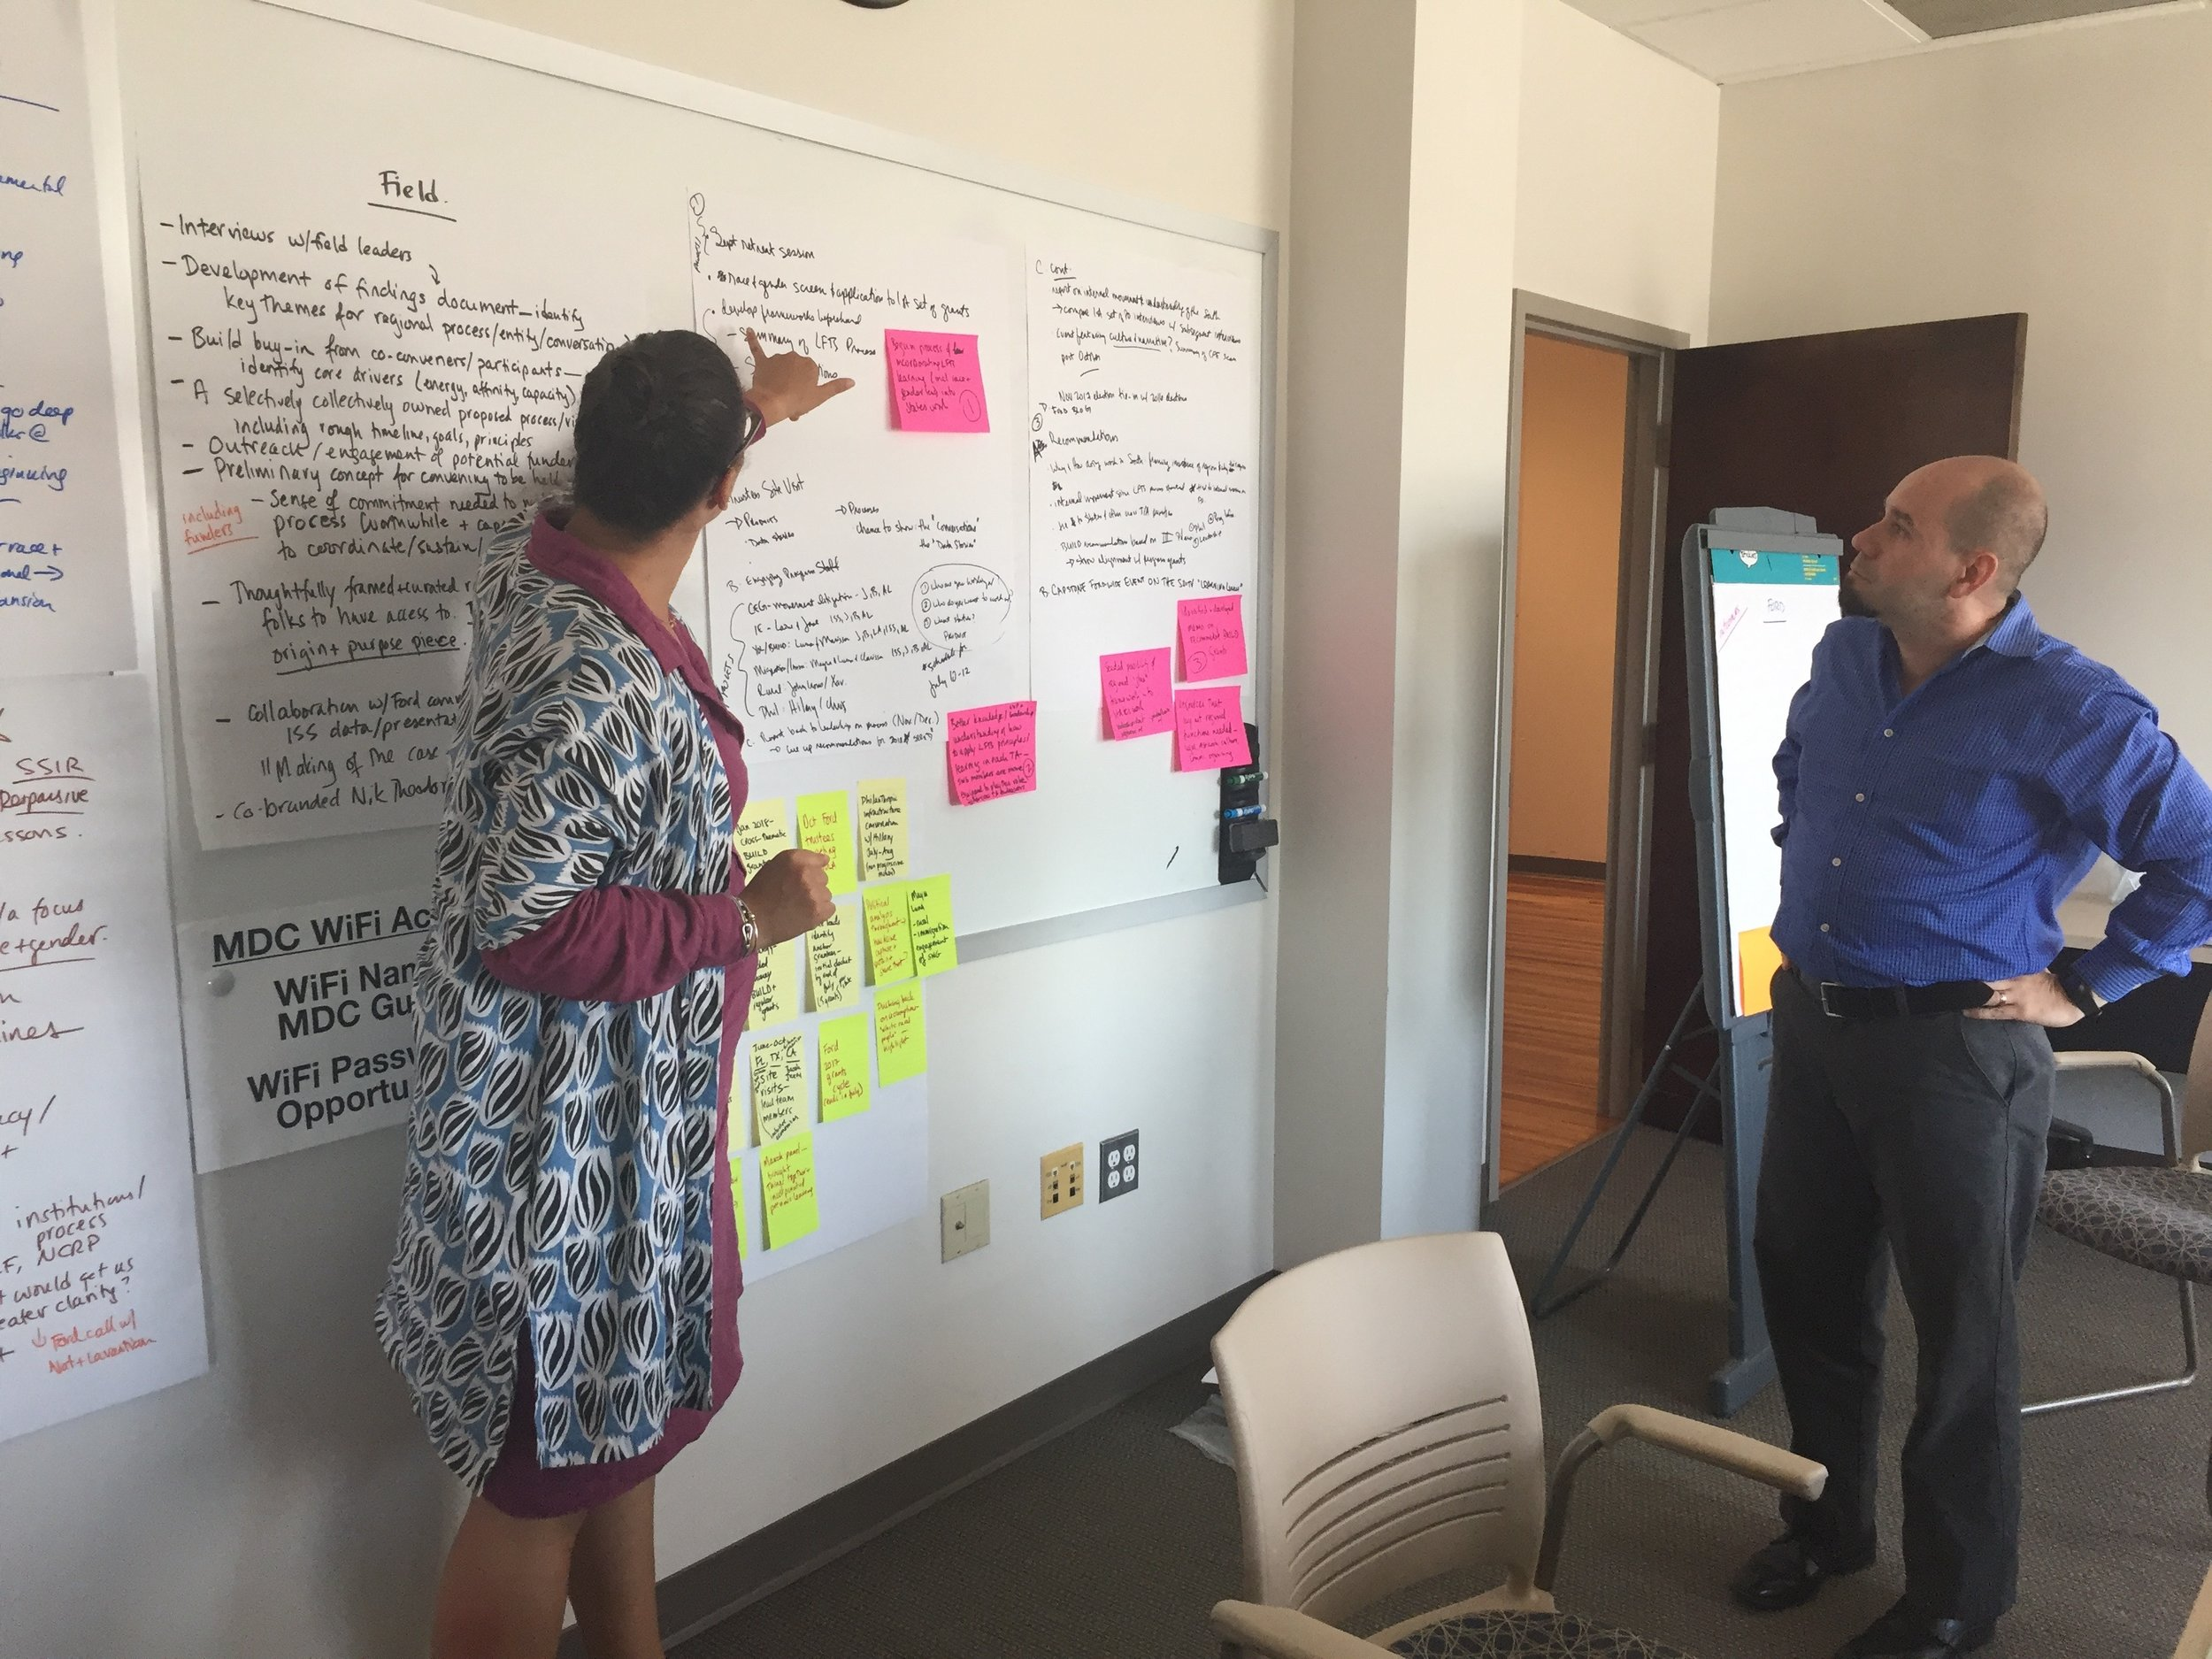 Strategy development with the Ford Foundation's Learning from the South team at the Institute for Southern Studies.